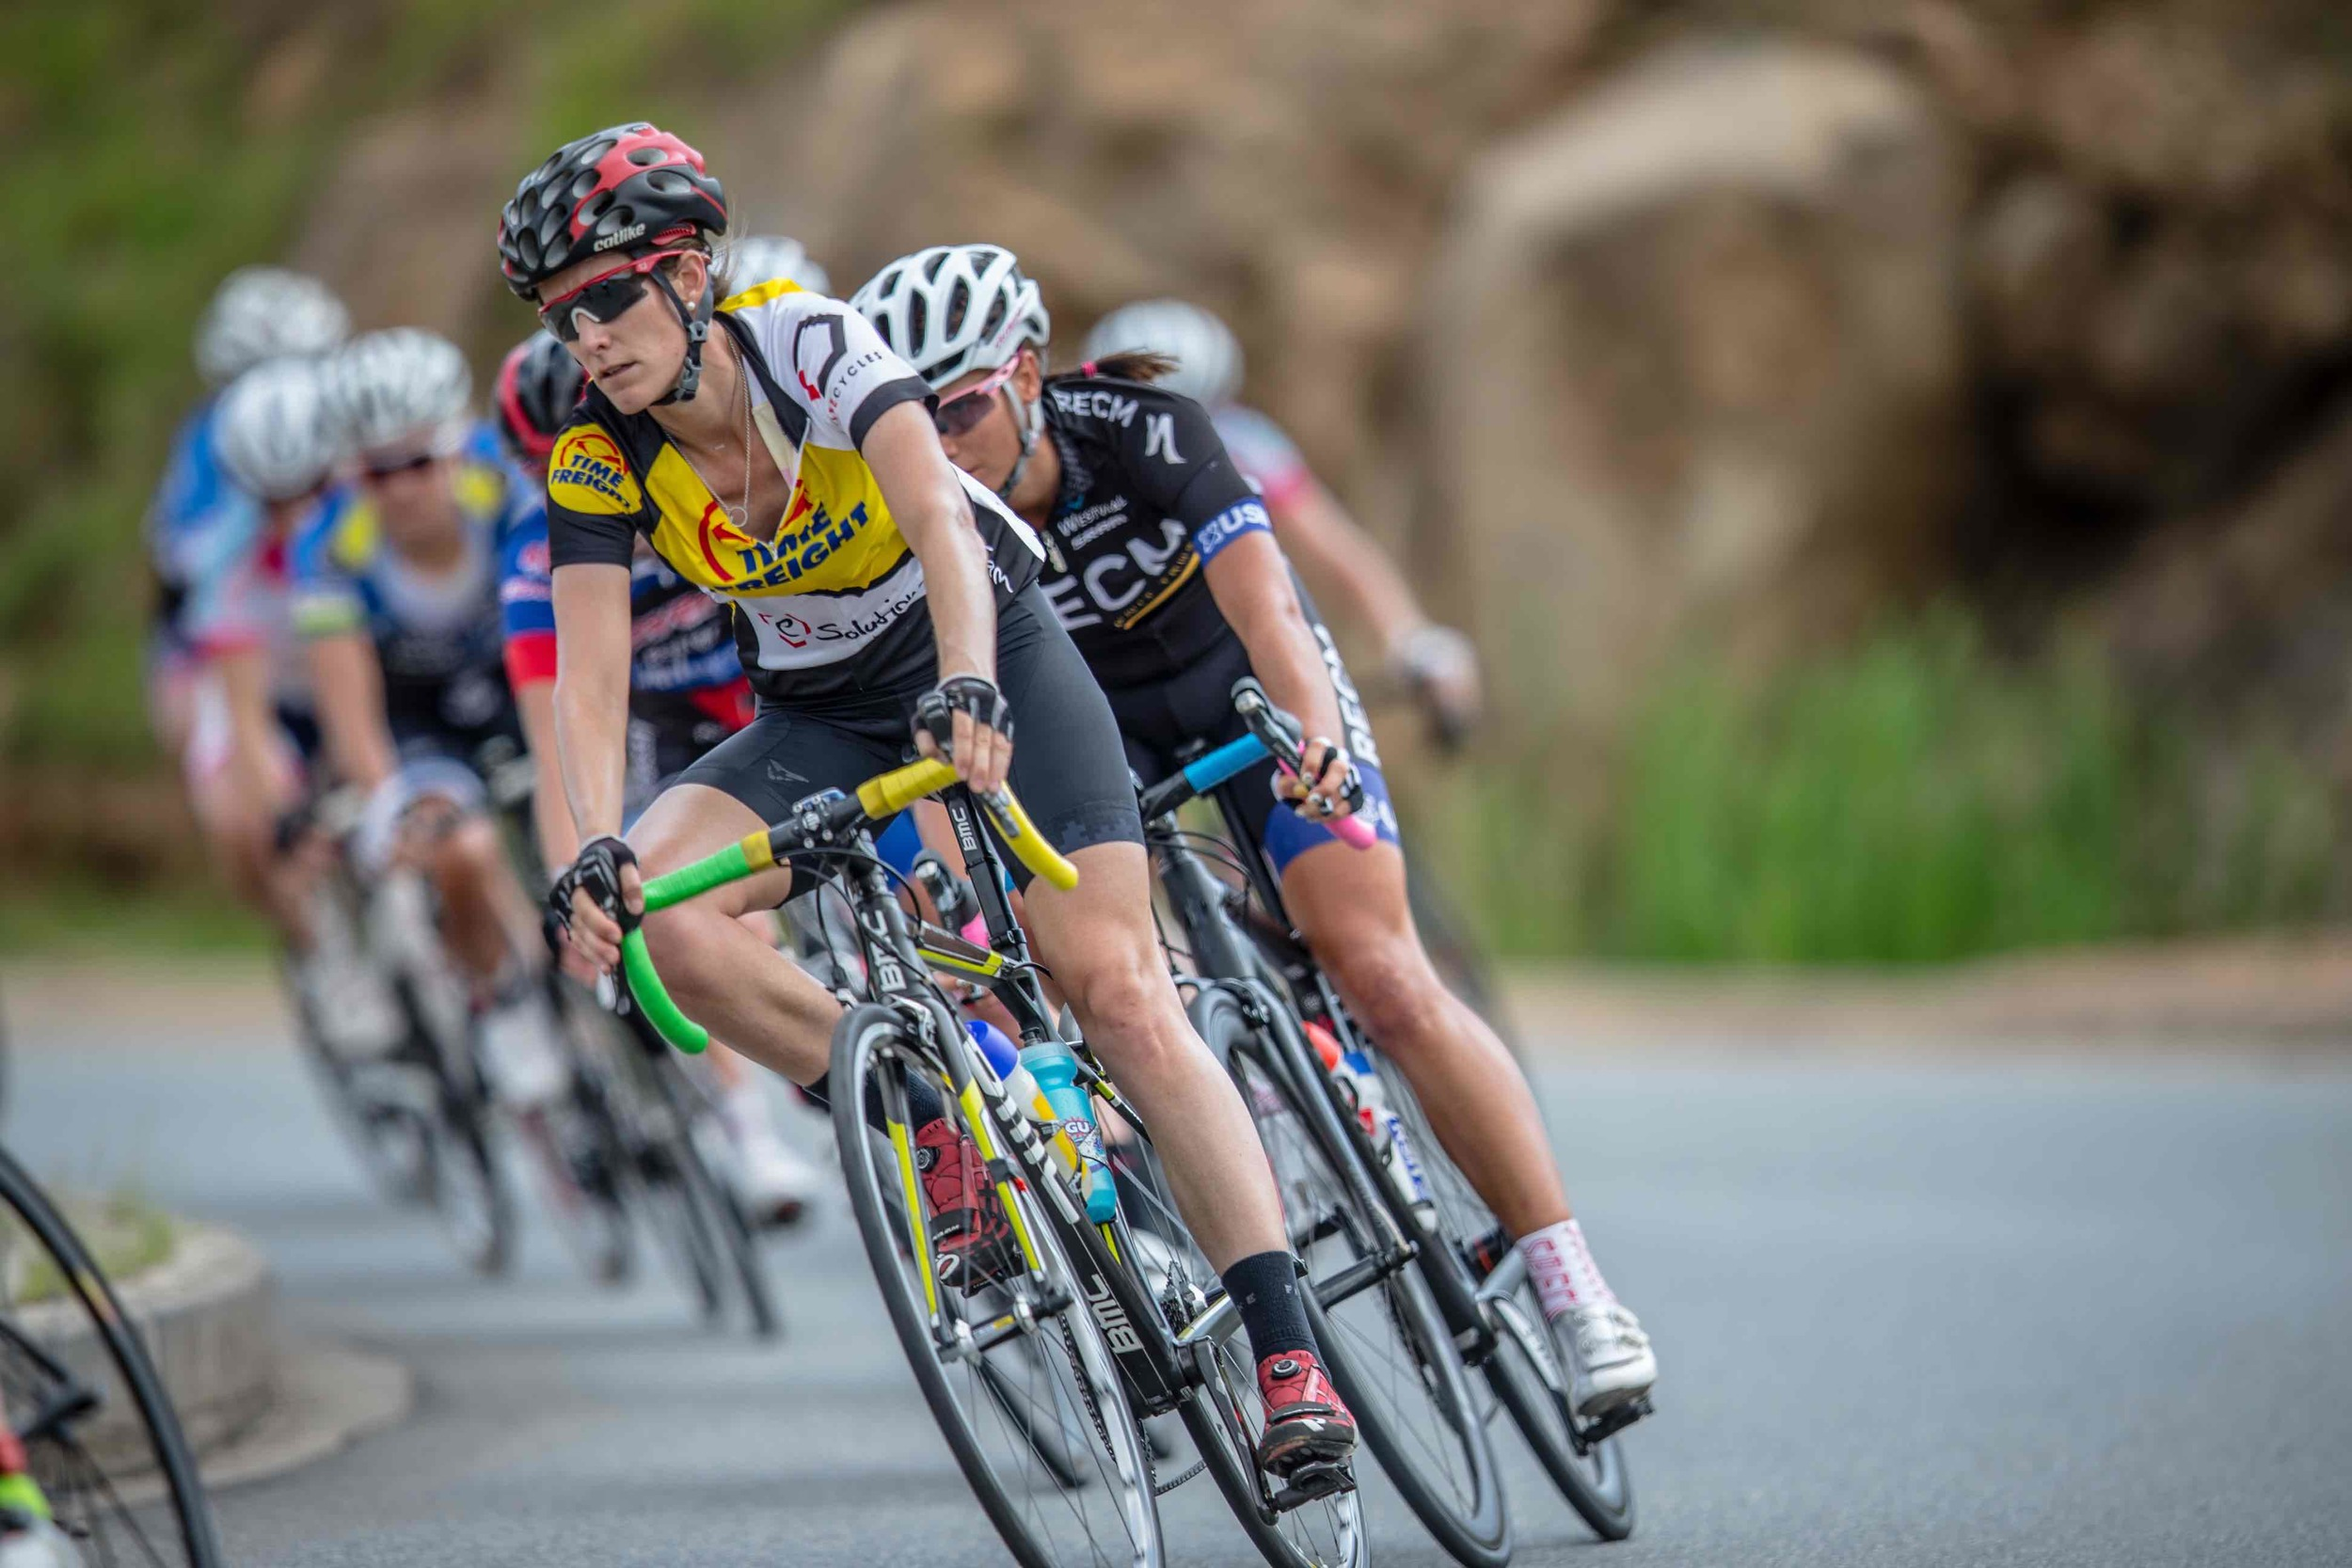 Cycling South Africa Women's Commission Director, Lise Olivier, has signed      with UCI women's team and 2016 Giro Rosa wildcard invitation recipient, Team Bizkaia-Durango. Olivier is ready and in full preparation ahead of the 2016 SA National Road Time Trial and Para-cycling Championships in KwaZulu-Natal from 10-14 February.